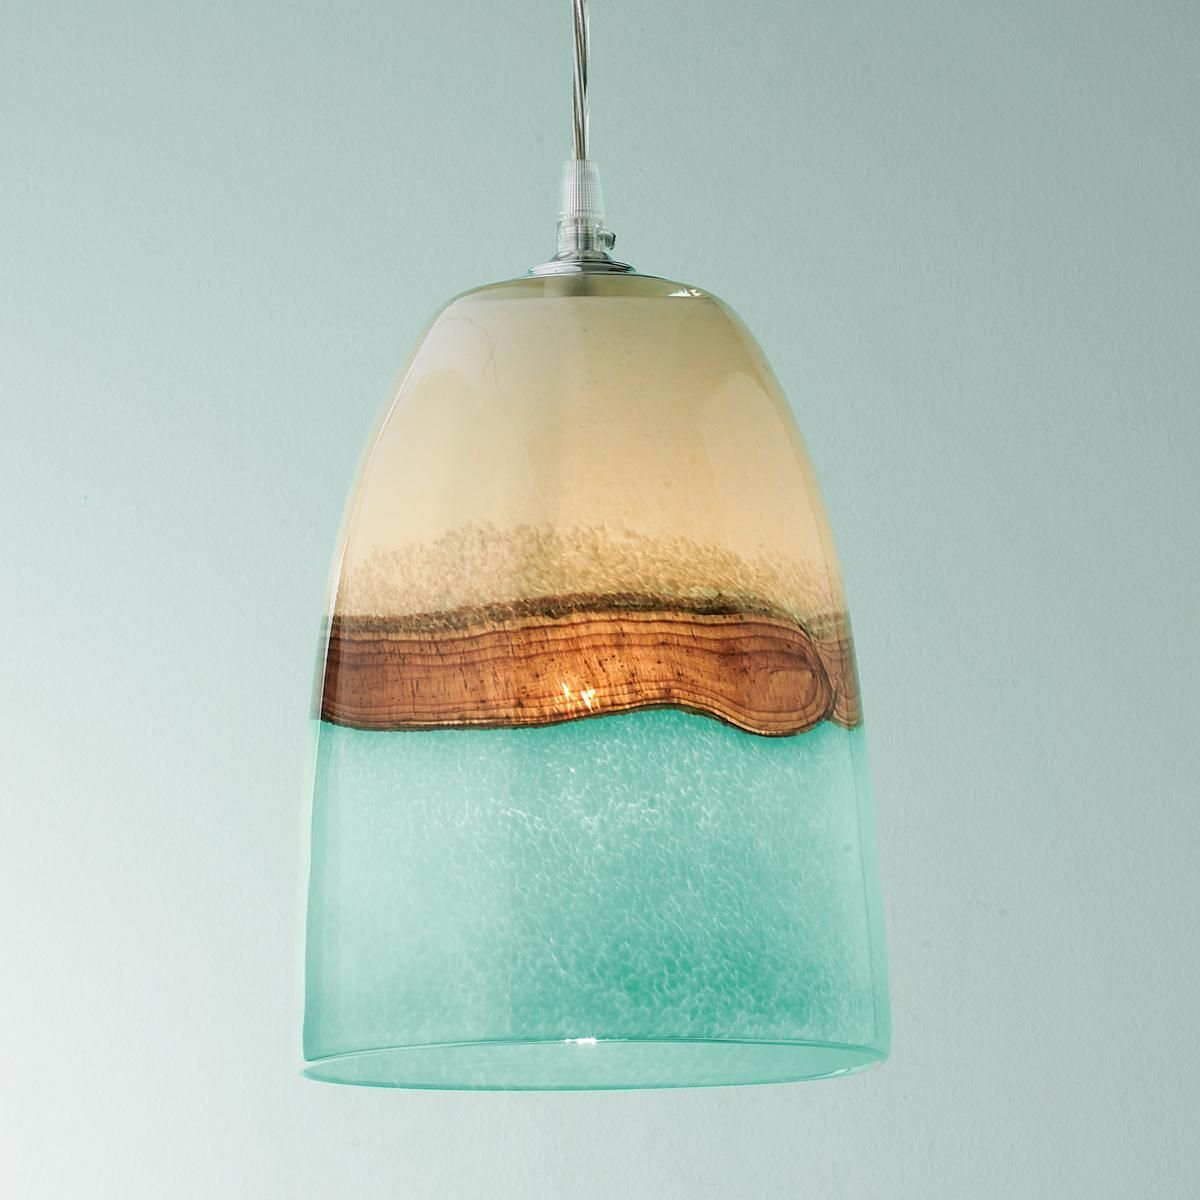 Light Pendants Strata Art Glass Pendant Light Turquoise Teal And Aqua